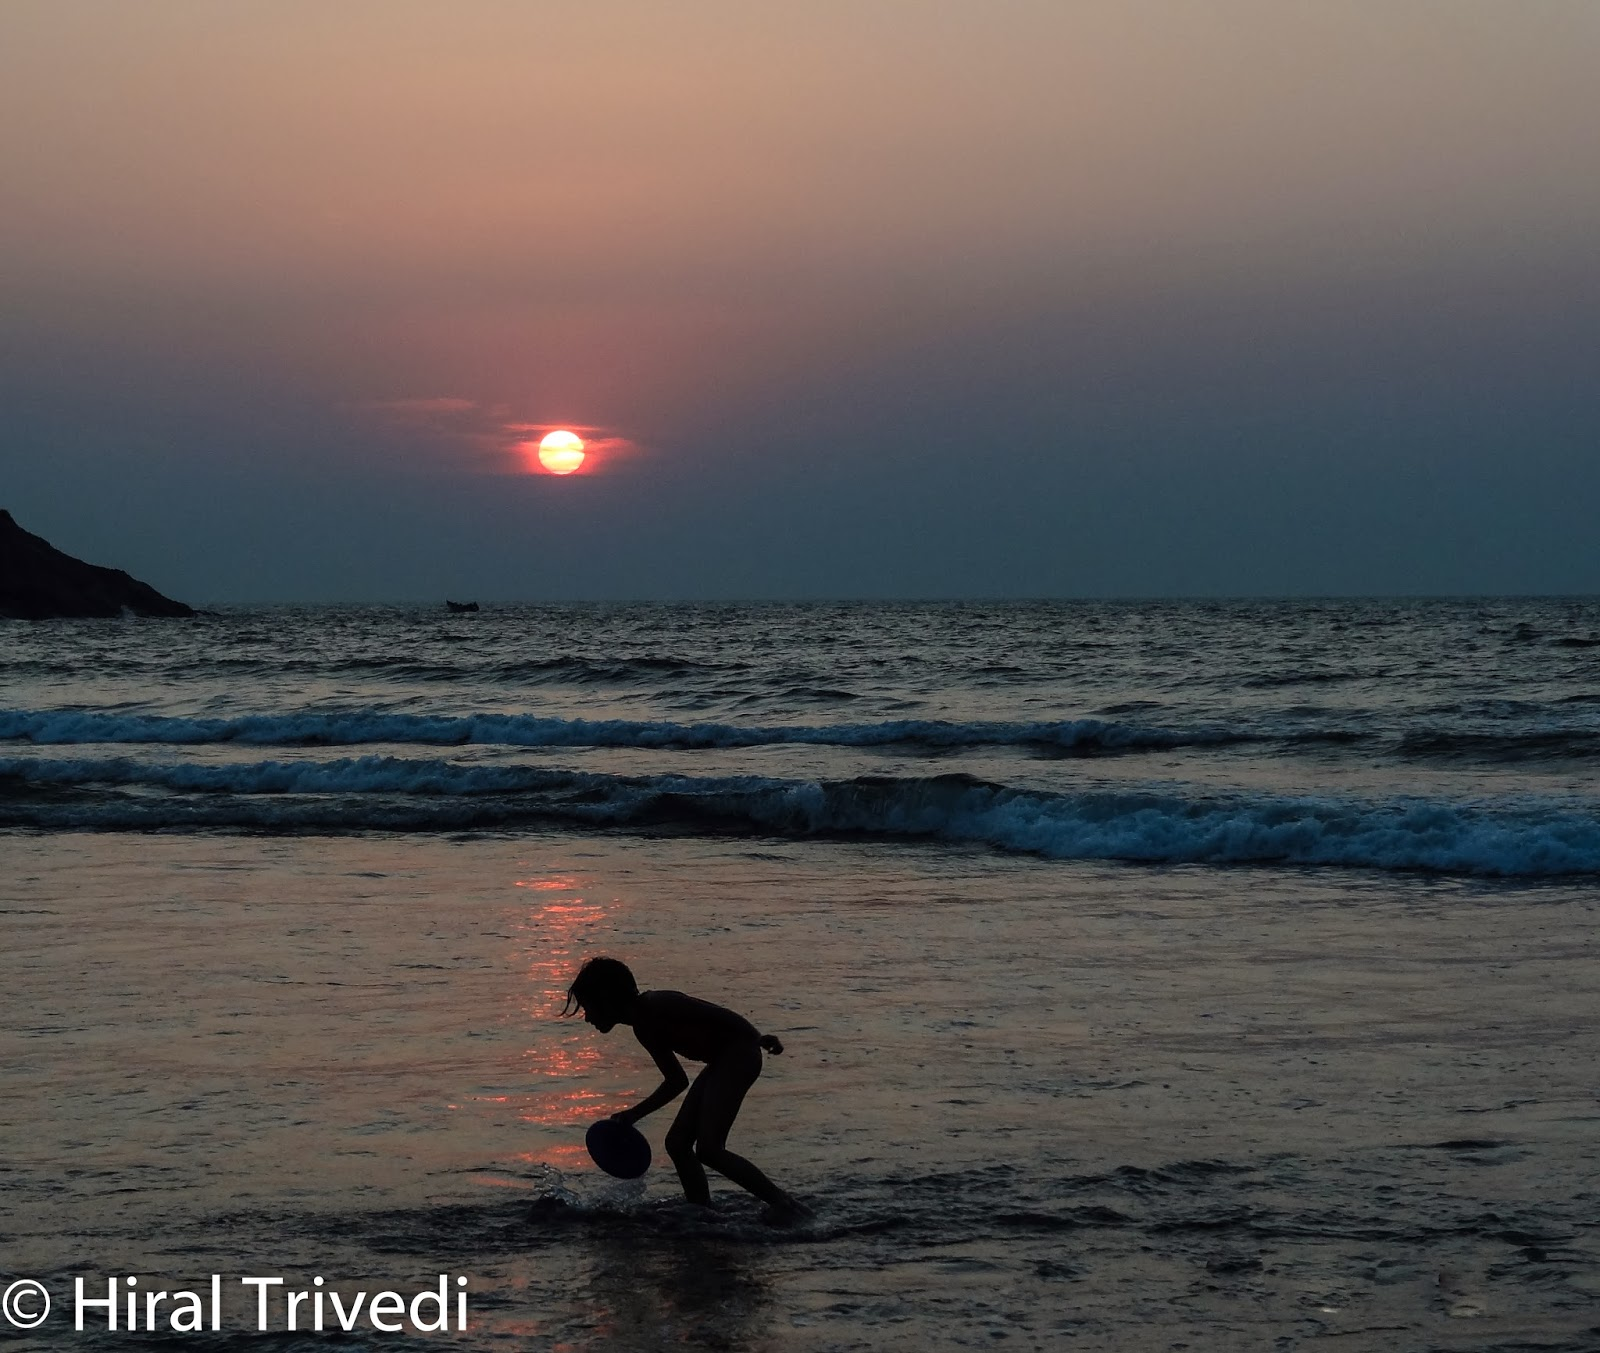 Watching the sunset at Kudle Beach was one of the experiences that will stay etched in my memories.